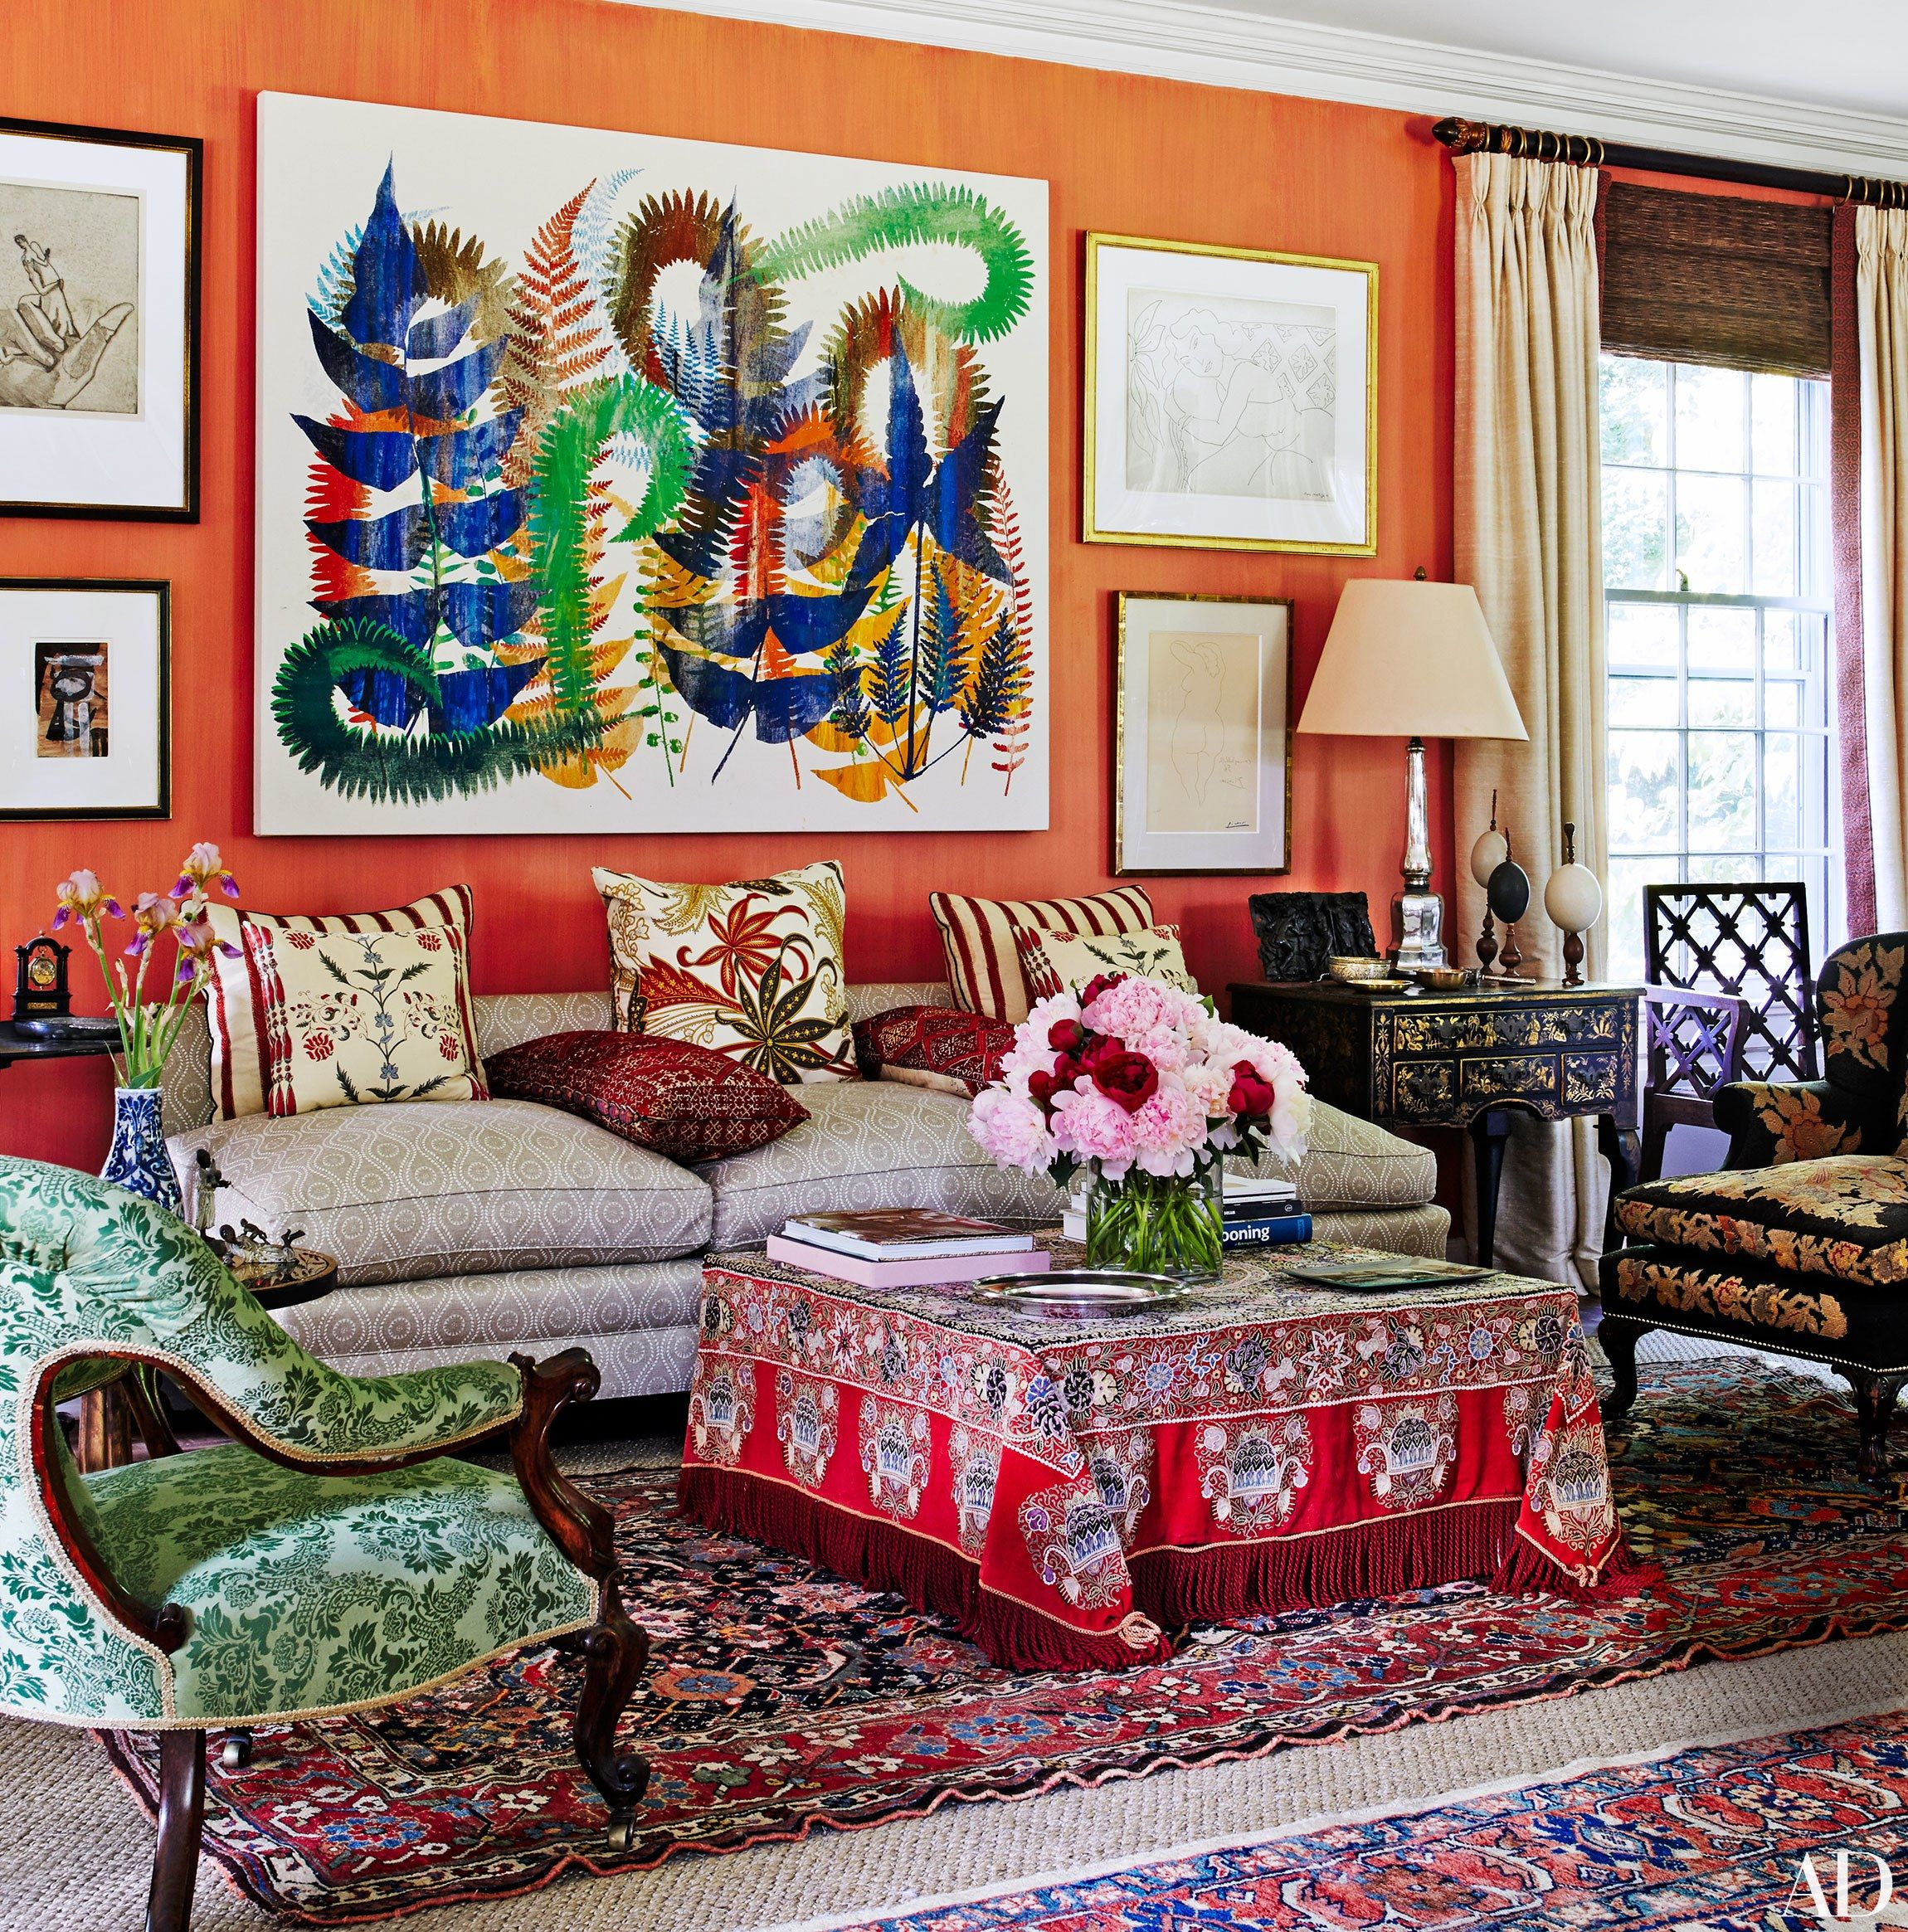 An eclectic living room with layered decor | archdigest.com